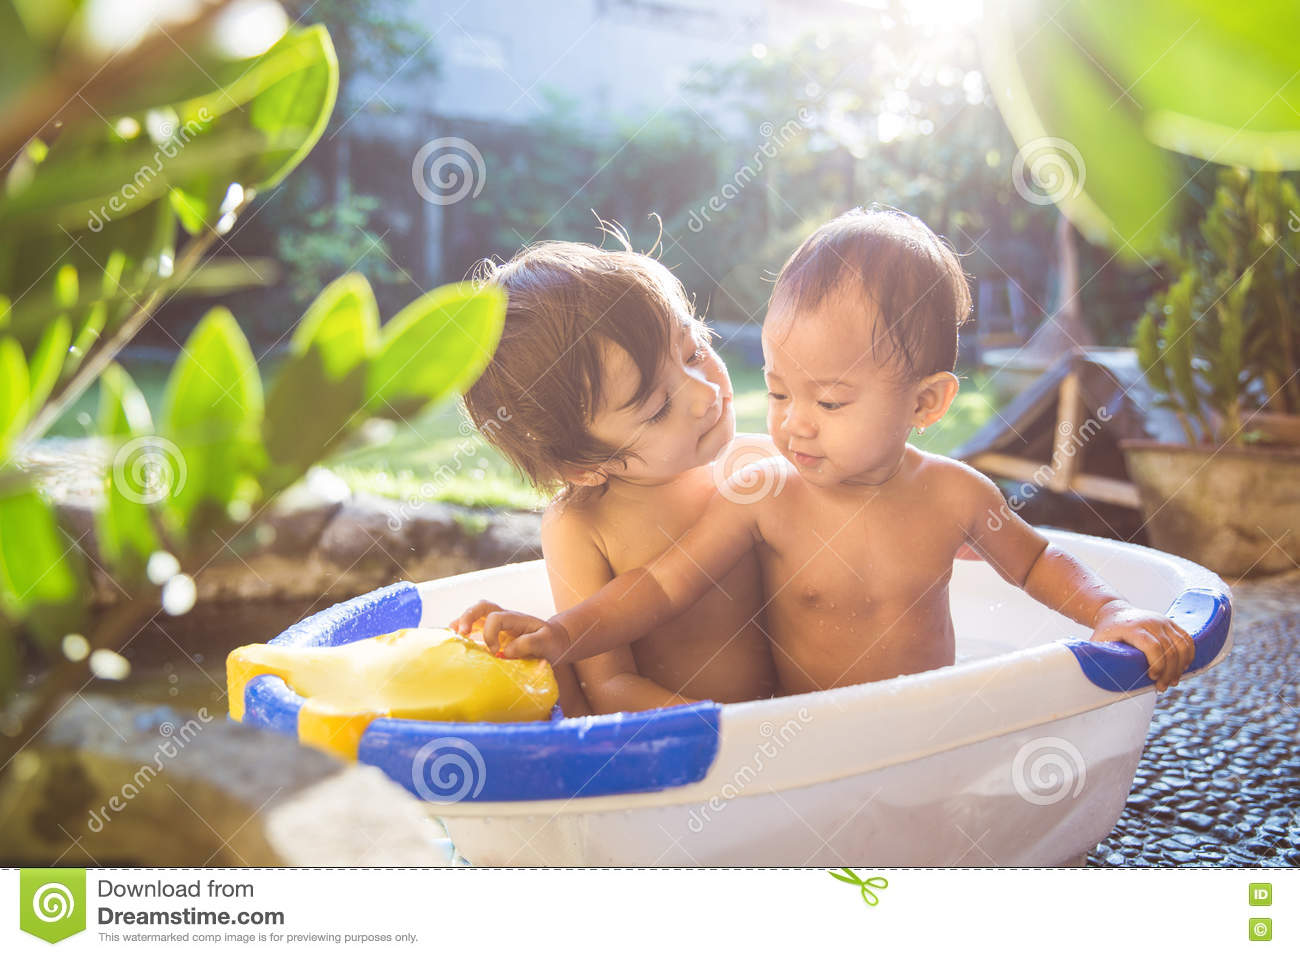 Two Babies Taking A Bath Together Stock Image - Image of baby ...